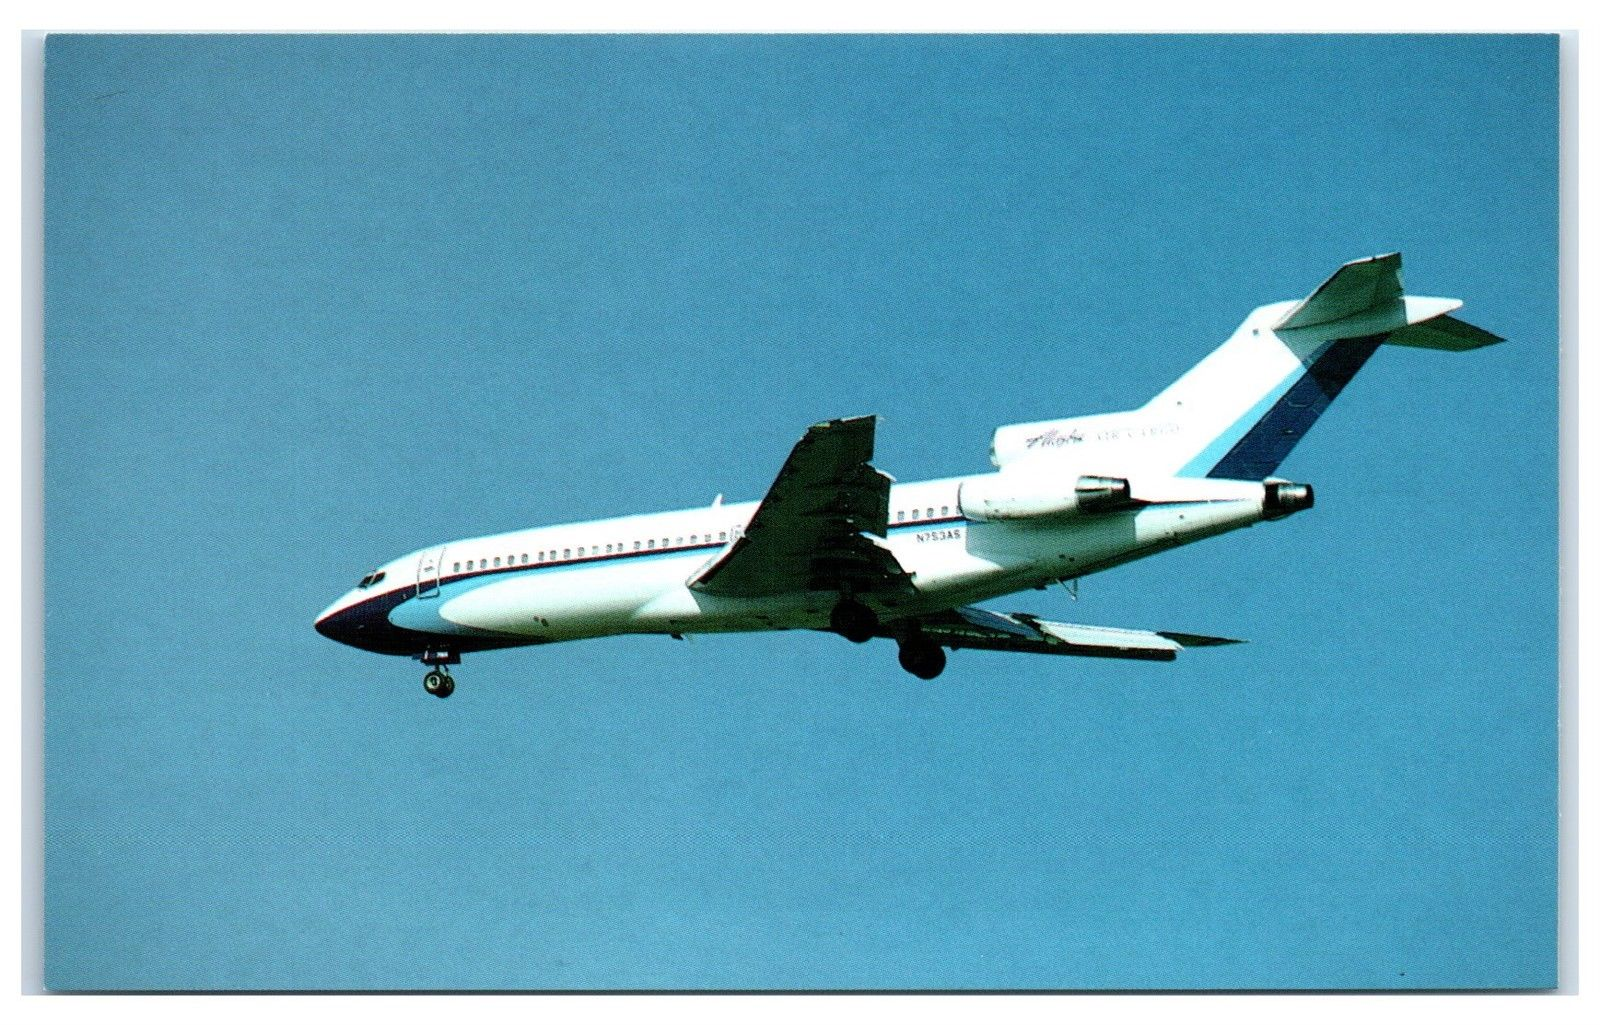 Alaska Airlines Air Cargo Boeing B-727-22C Airplane Postcard